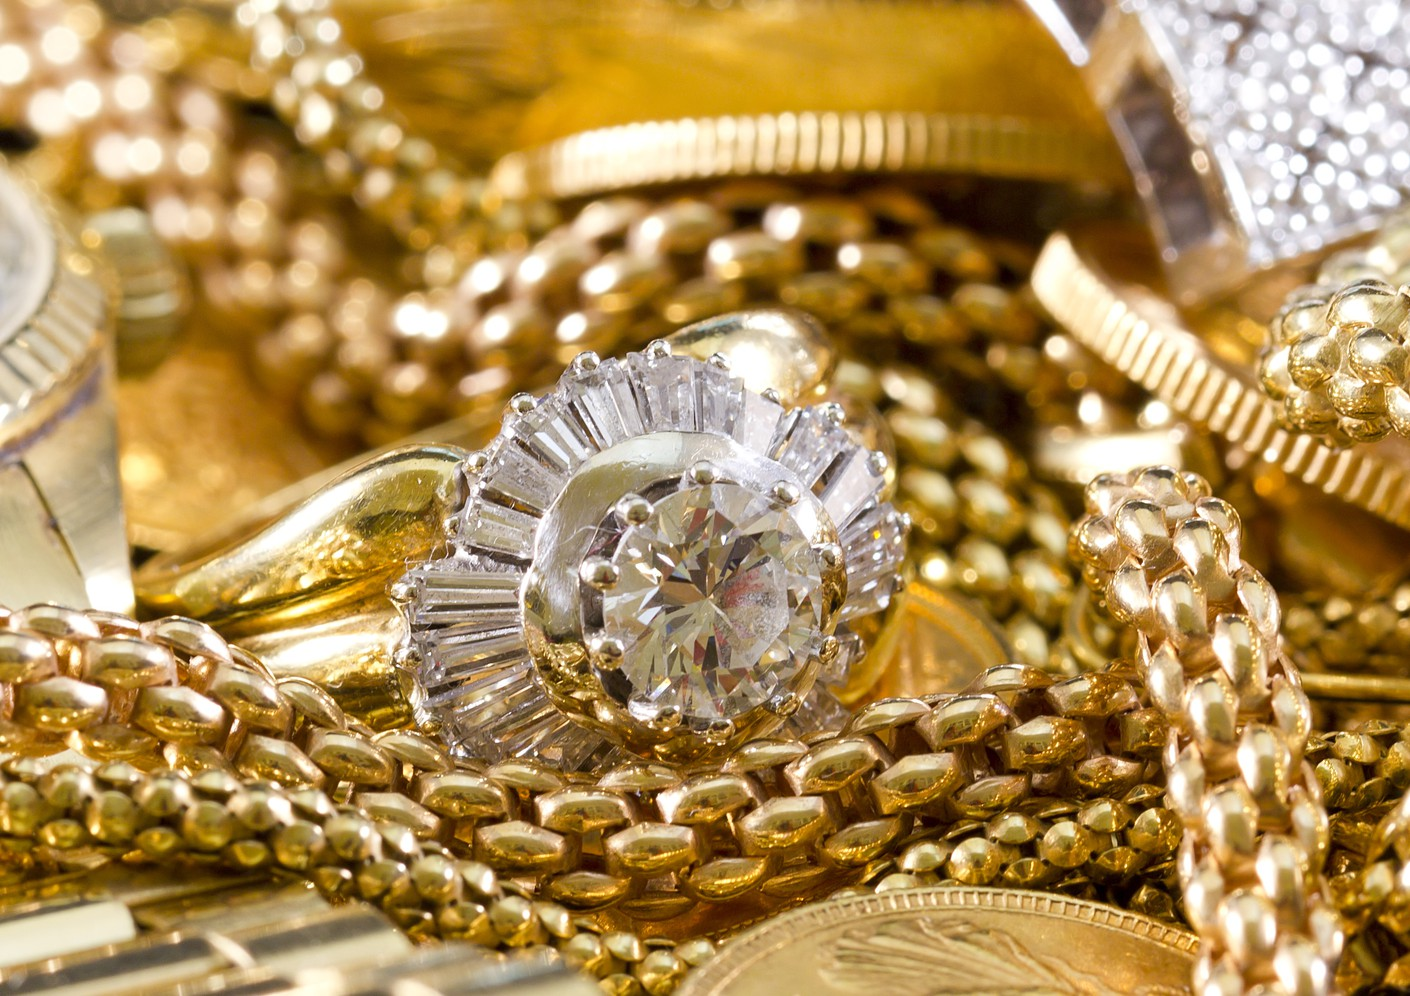 Expand Your Awareness When Selling Jewelry